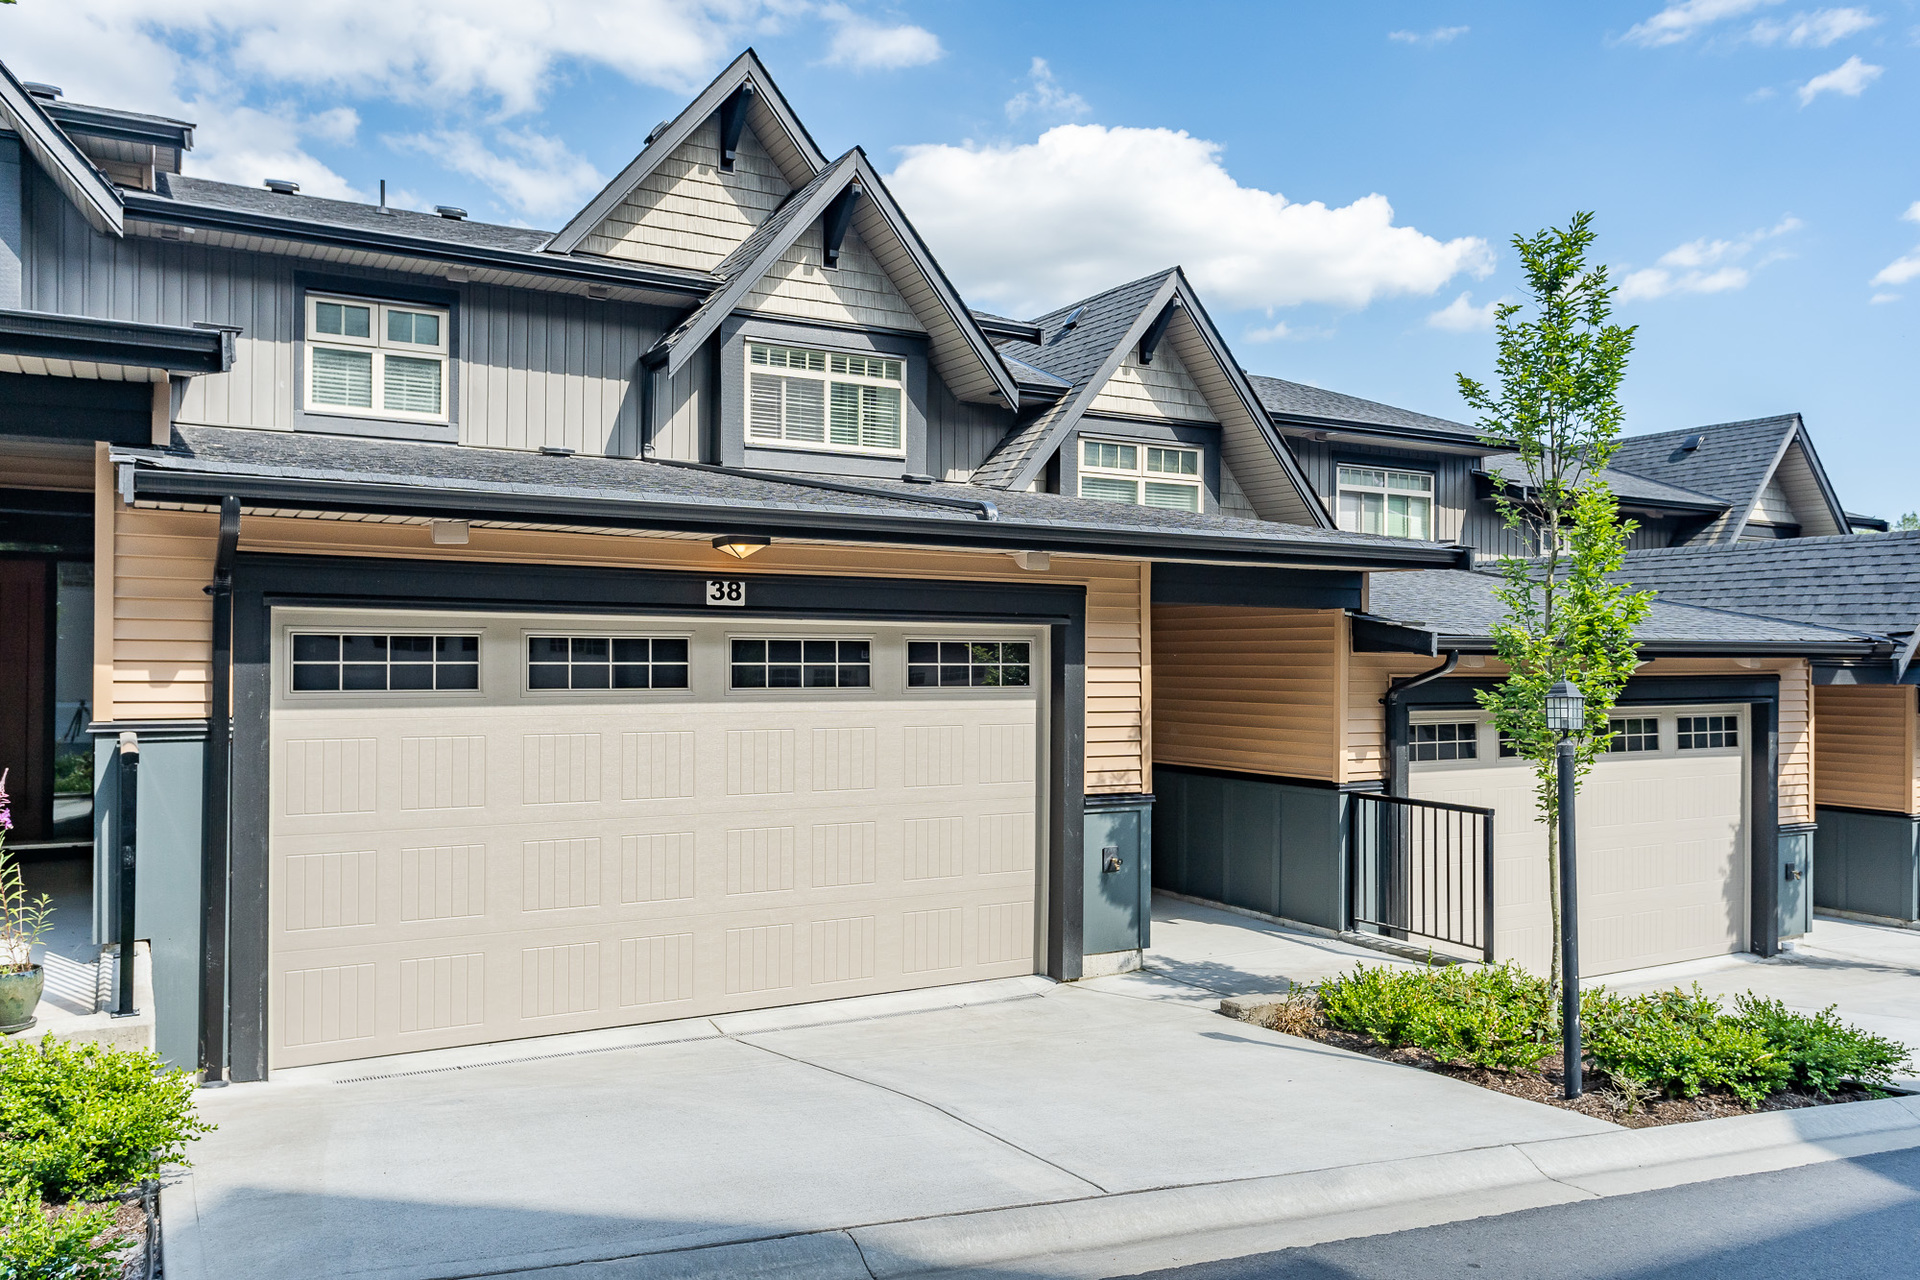 41532_4 at 38 - 10525 240 Street, Albion, Maple Ridge